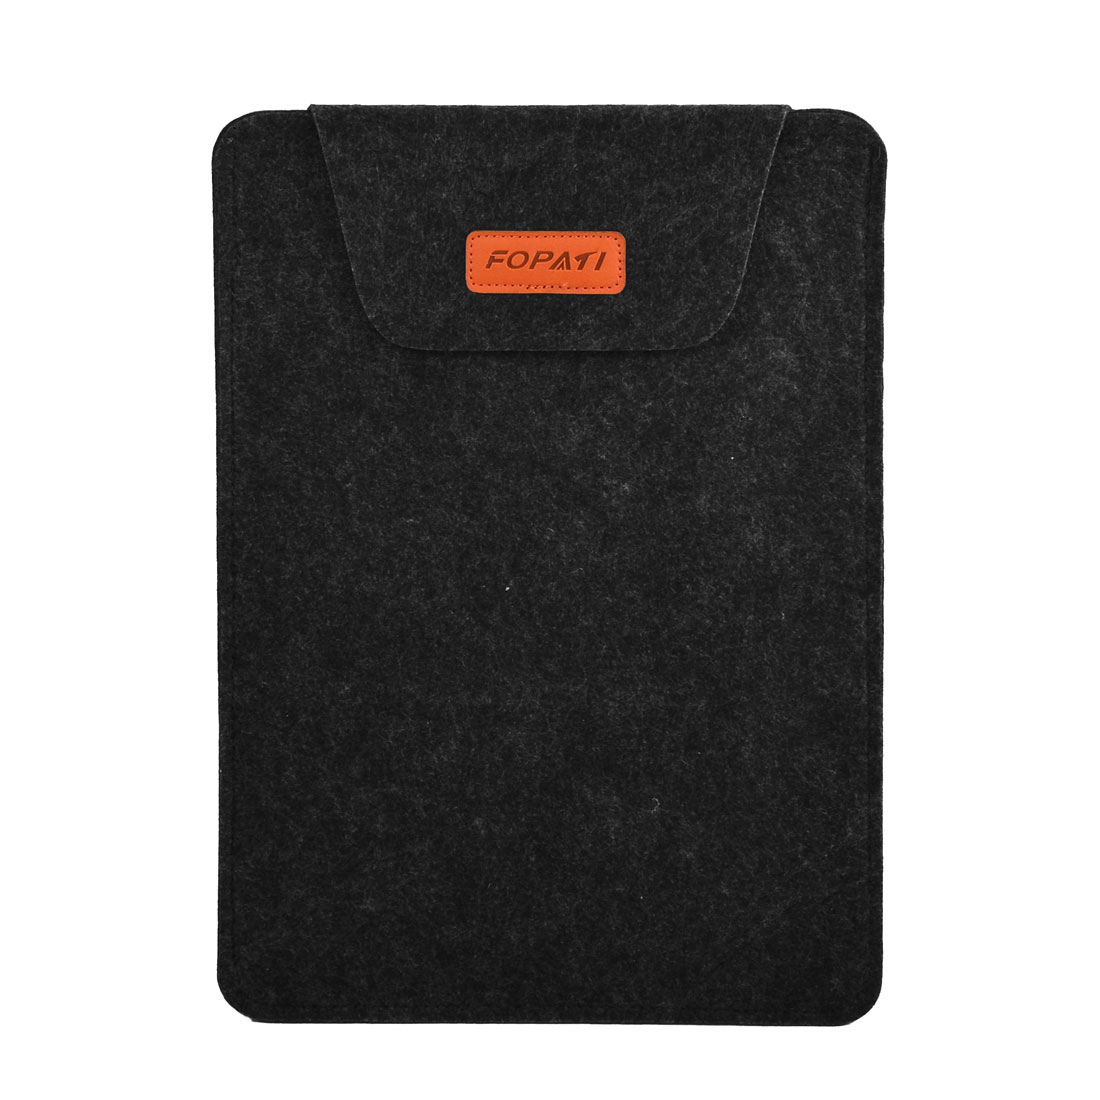 Office PC Computer Wool Felt Universal Protective Skin Bag Notebook Sleeve Case Black for 14 Inch Laptop